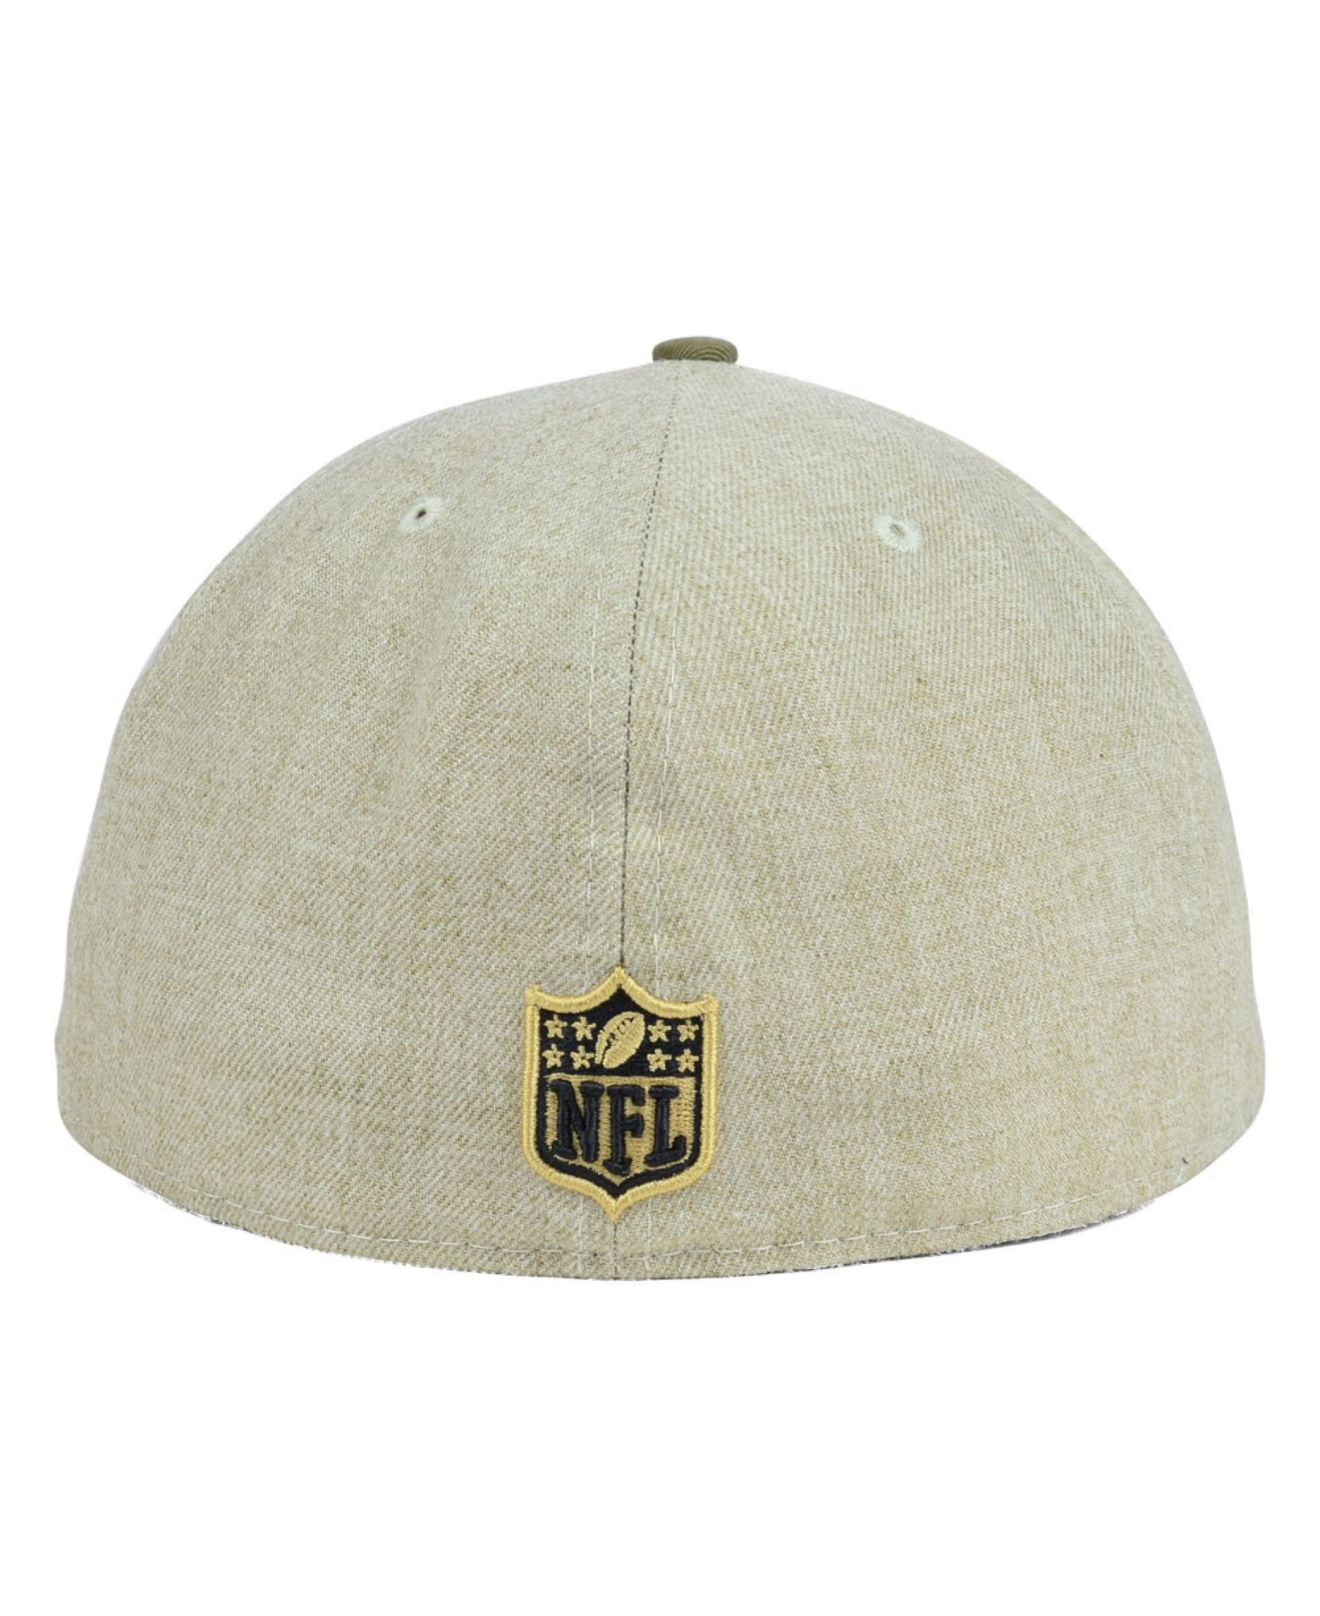 Lyst - KTZ Houston Oilers Oatwood 59fifty Cap in Natural for Men 717152b8e98